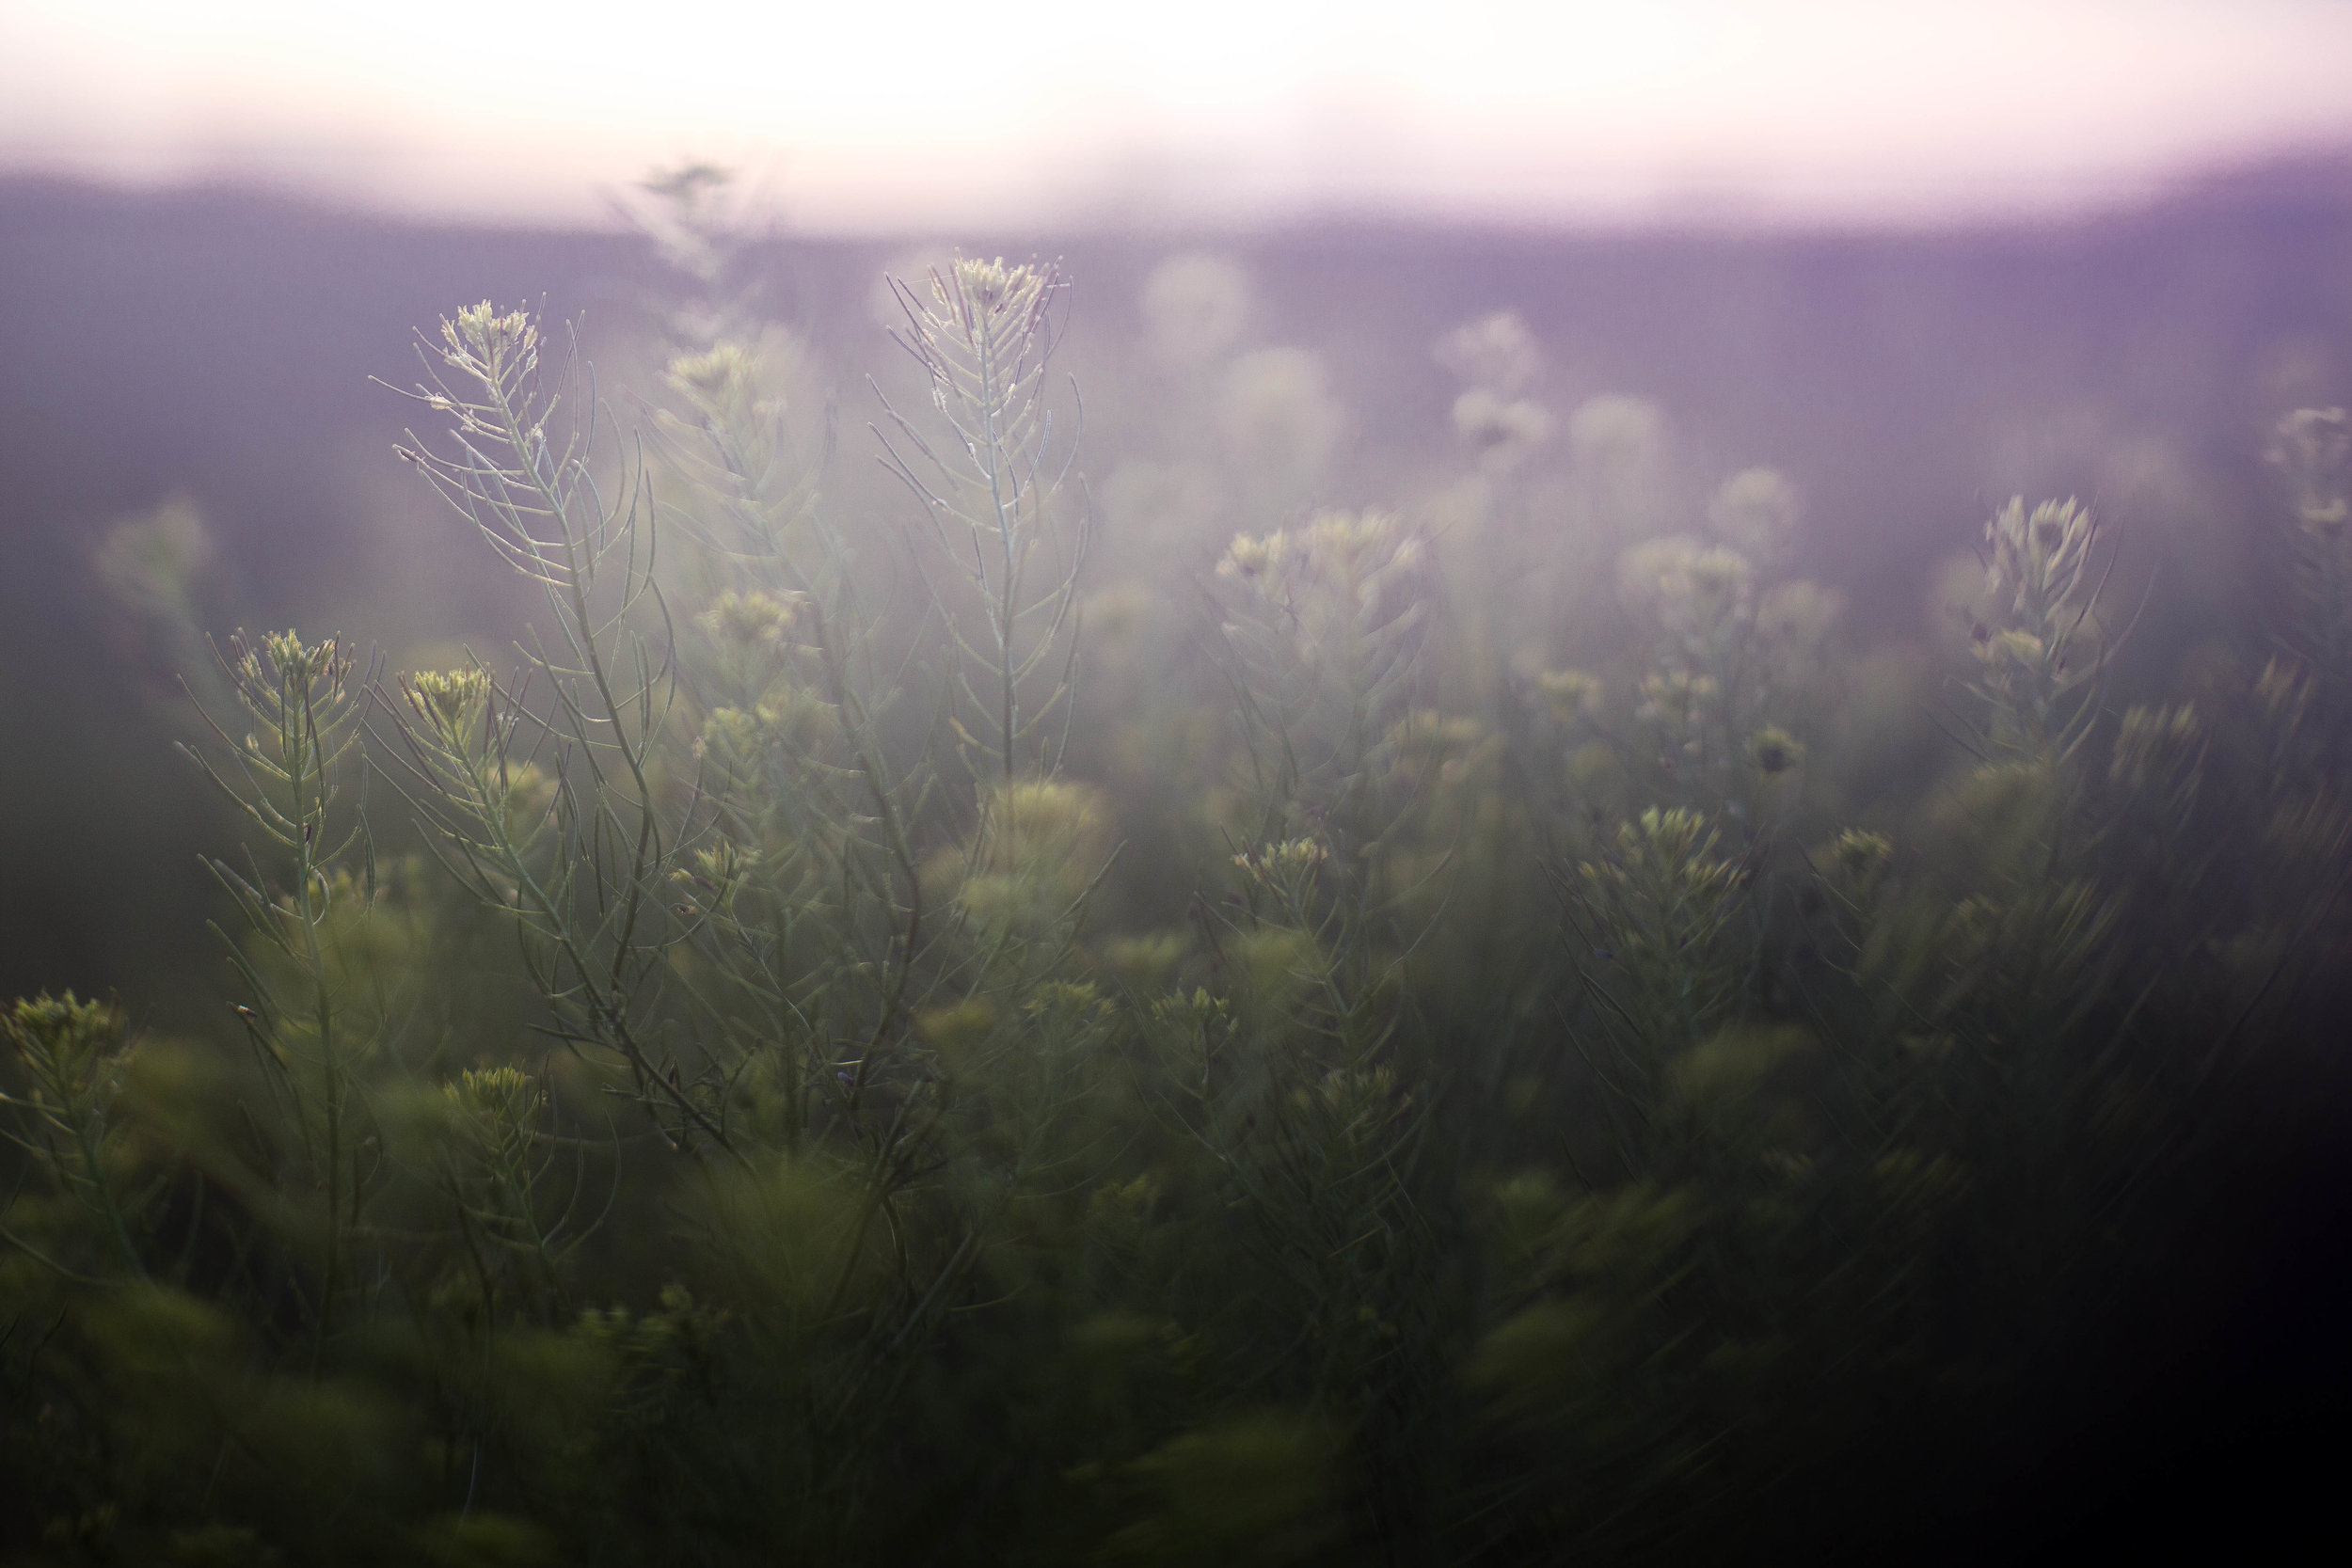 04.10.17 B freelensed sunset weeds-2438.jpg